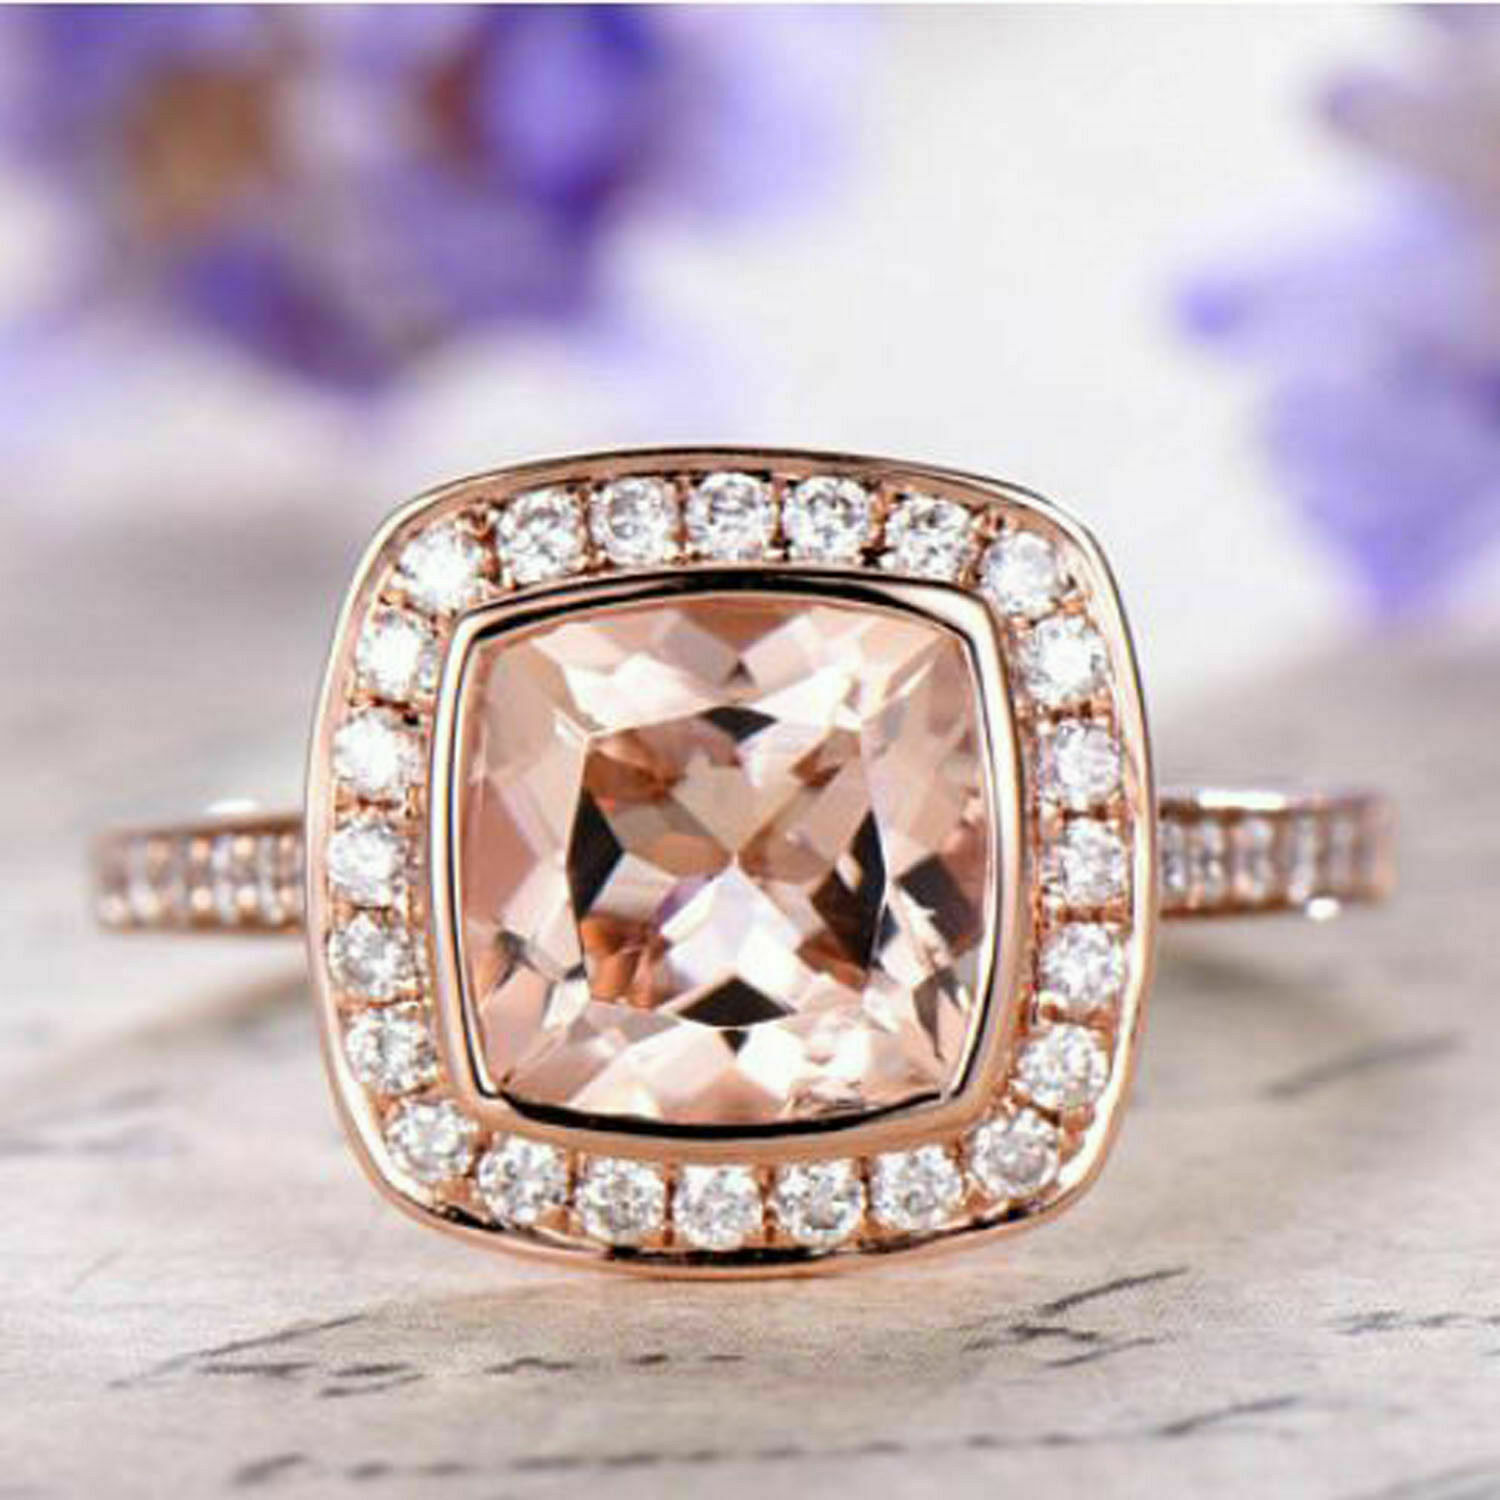 2Ct Cushion Cut Bezel Set Morganite Halo Engagement Ring 14k pink gold Finish